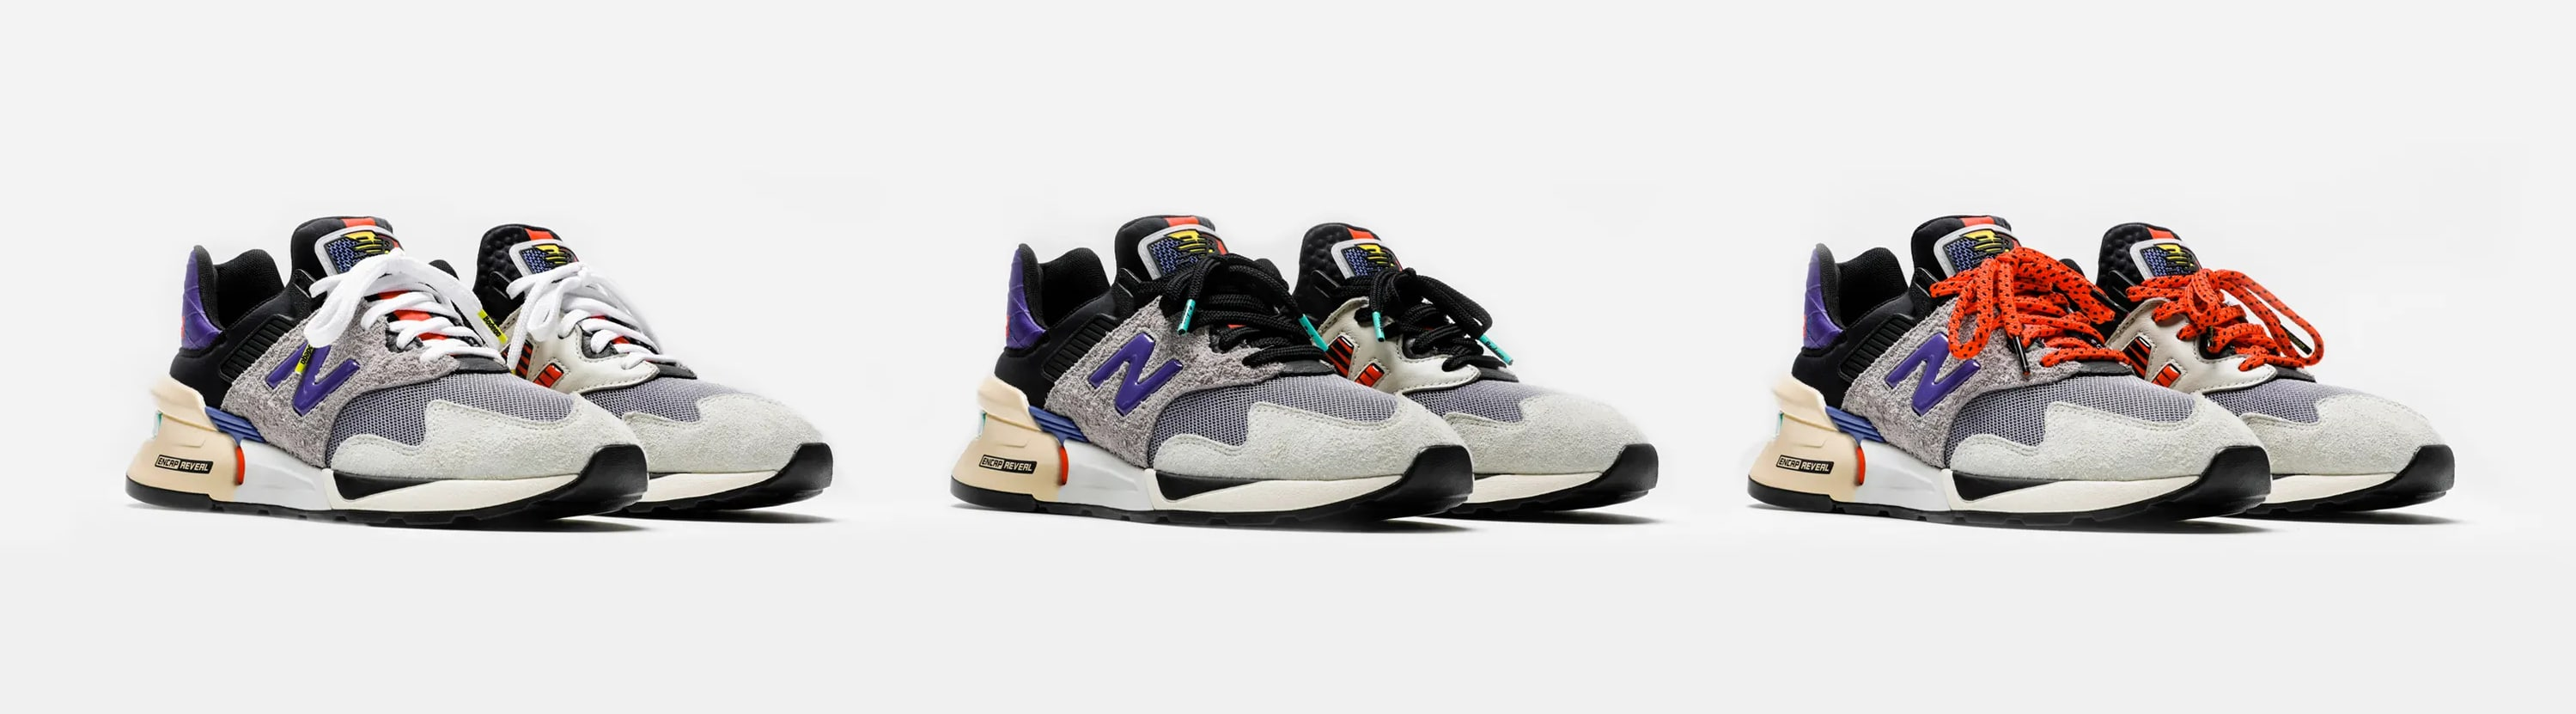 Bodega x New Balance 997S 'No Days Off' (Laces)